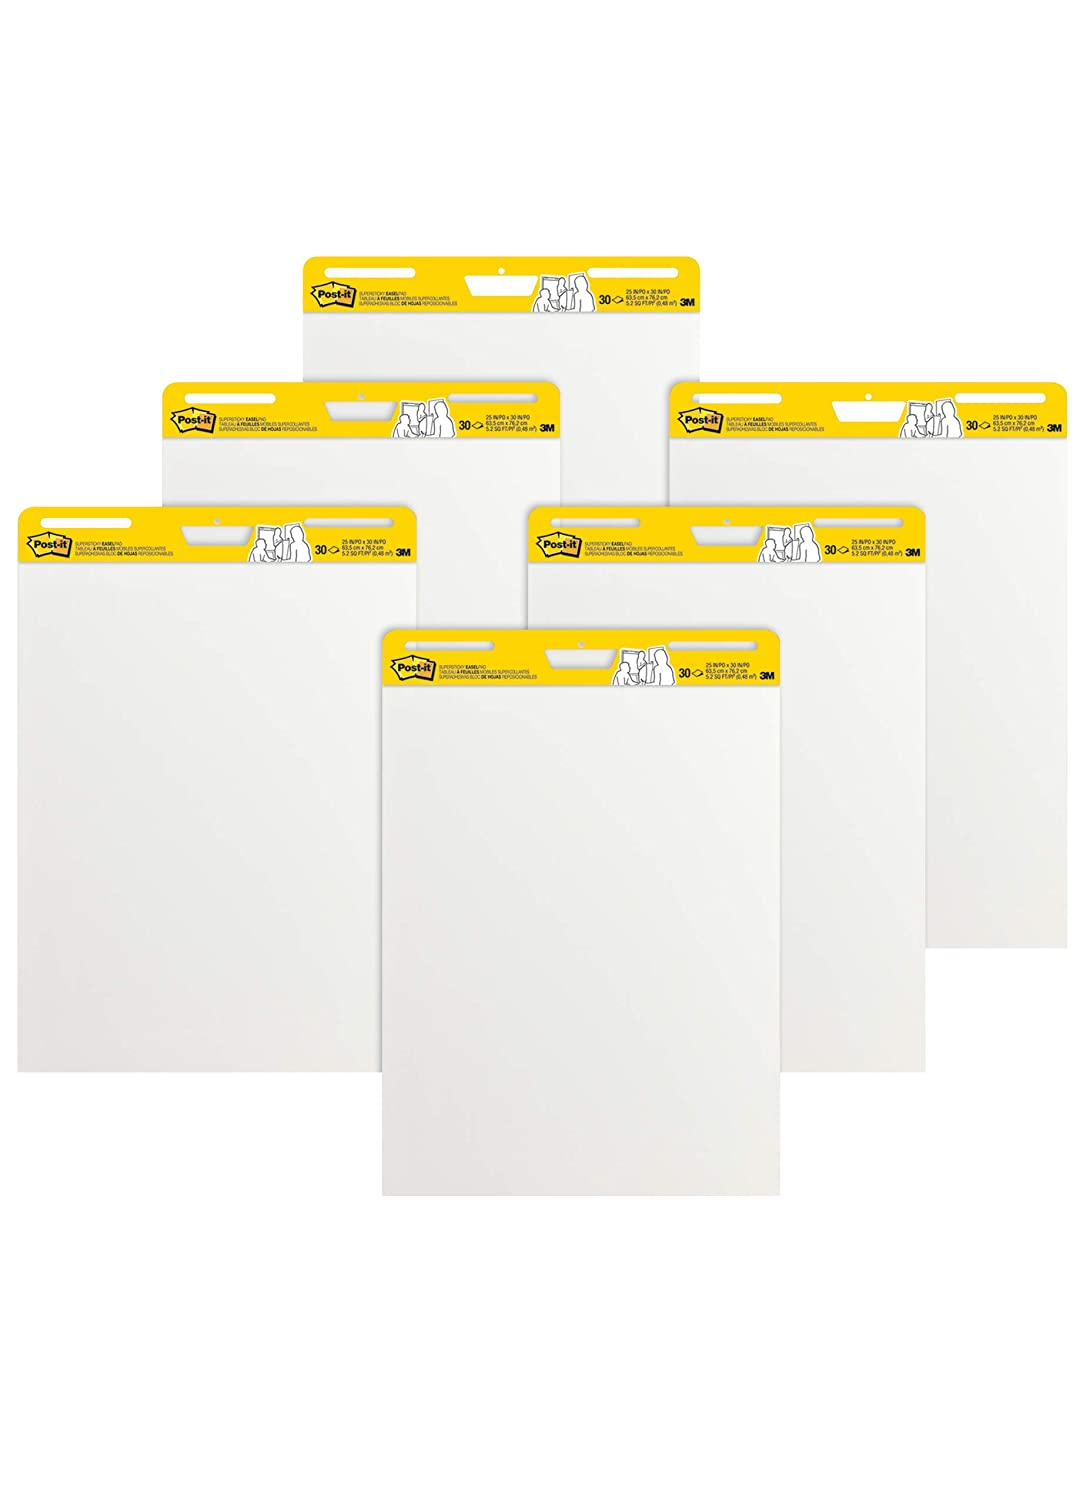 Post-it Super Sticky Easel Pad, 25 x 30 Inches, 30 Sheets/Pad, 6 Pads (559VAD6PK), Large White Premium Self Stick Flip Chart Paper, Super Sticking Power